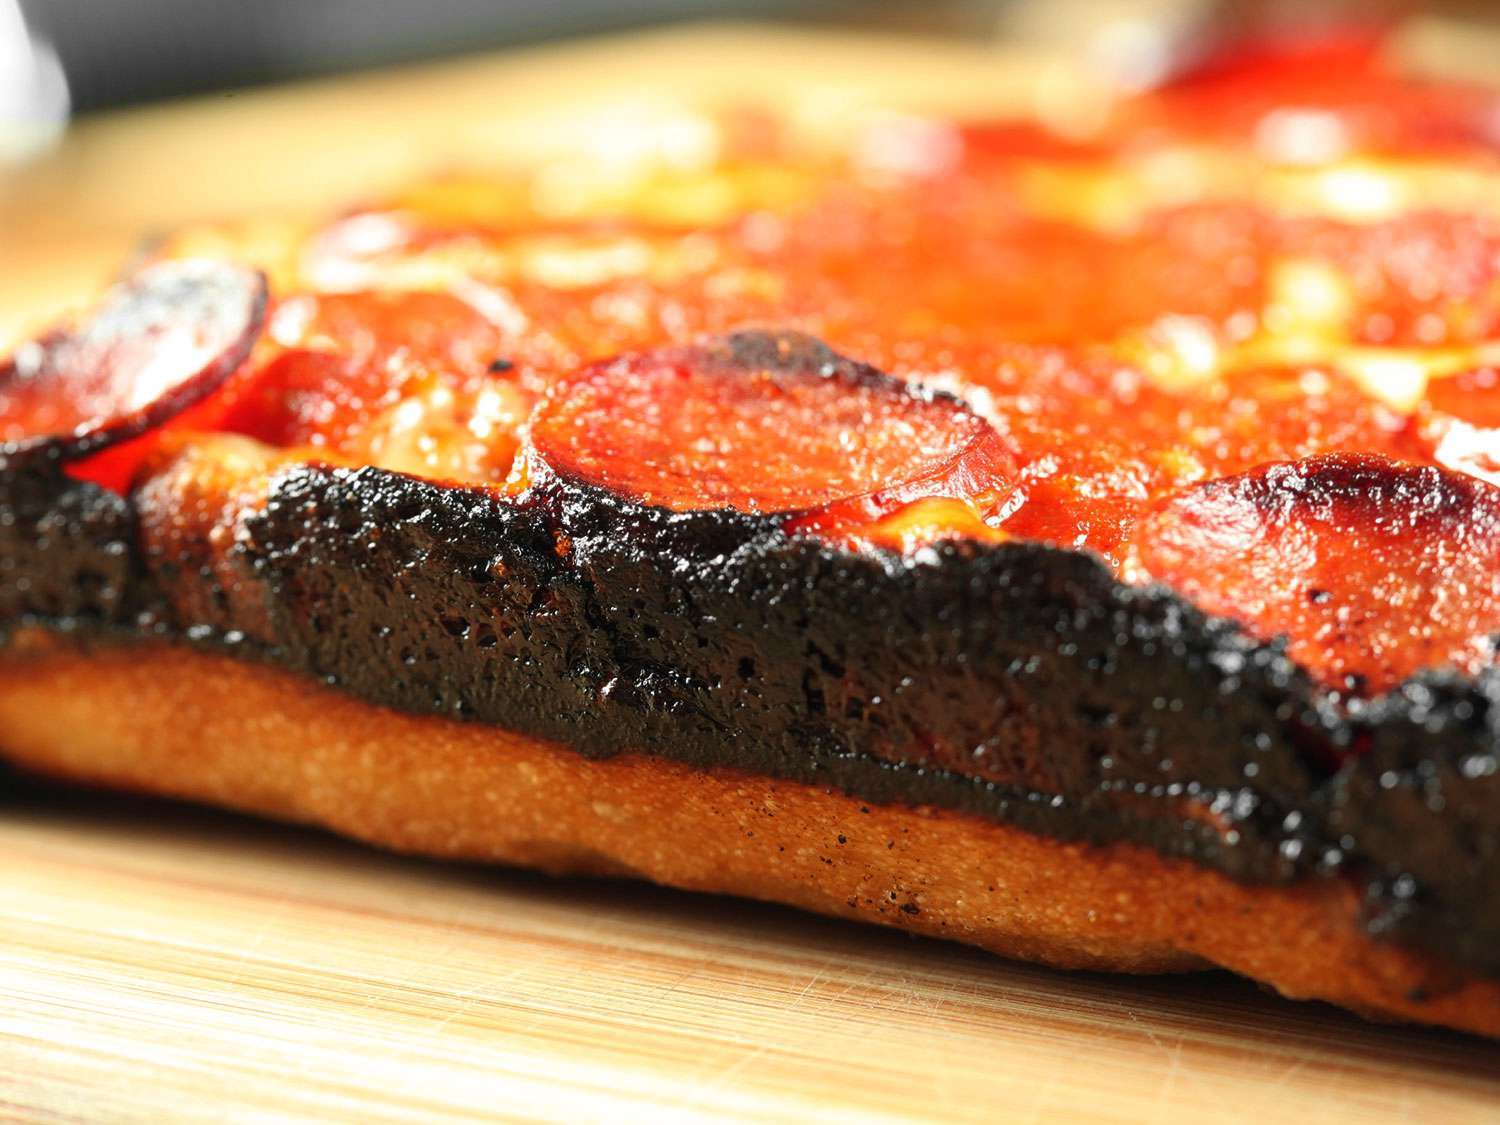 Crisp cheese cooked onto the edge of a Detroit-style pizza